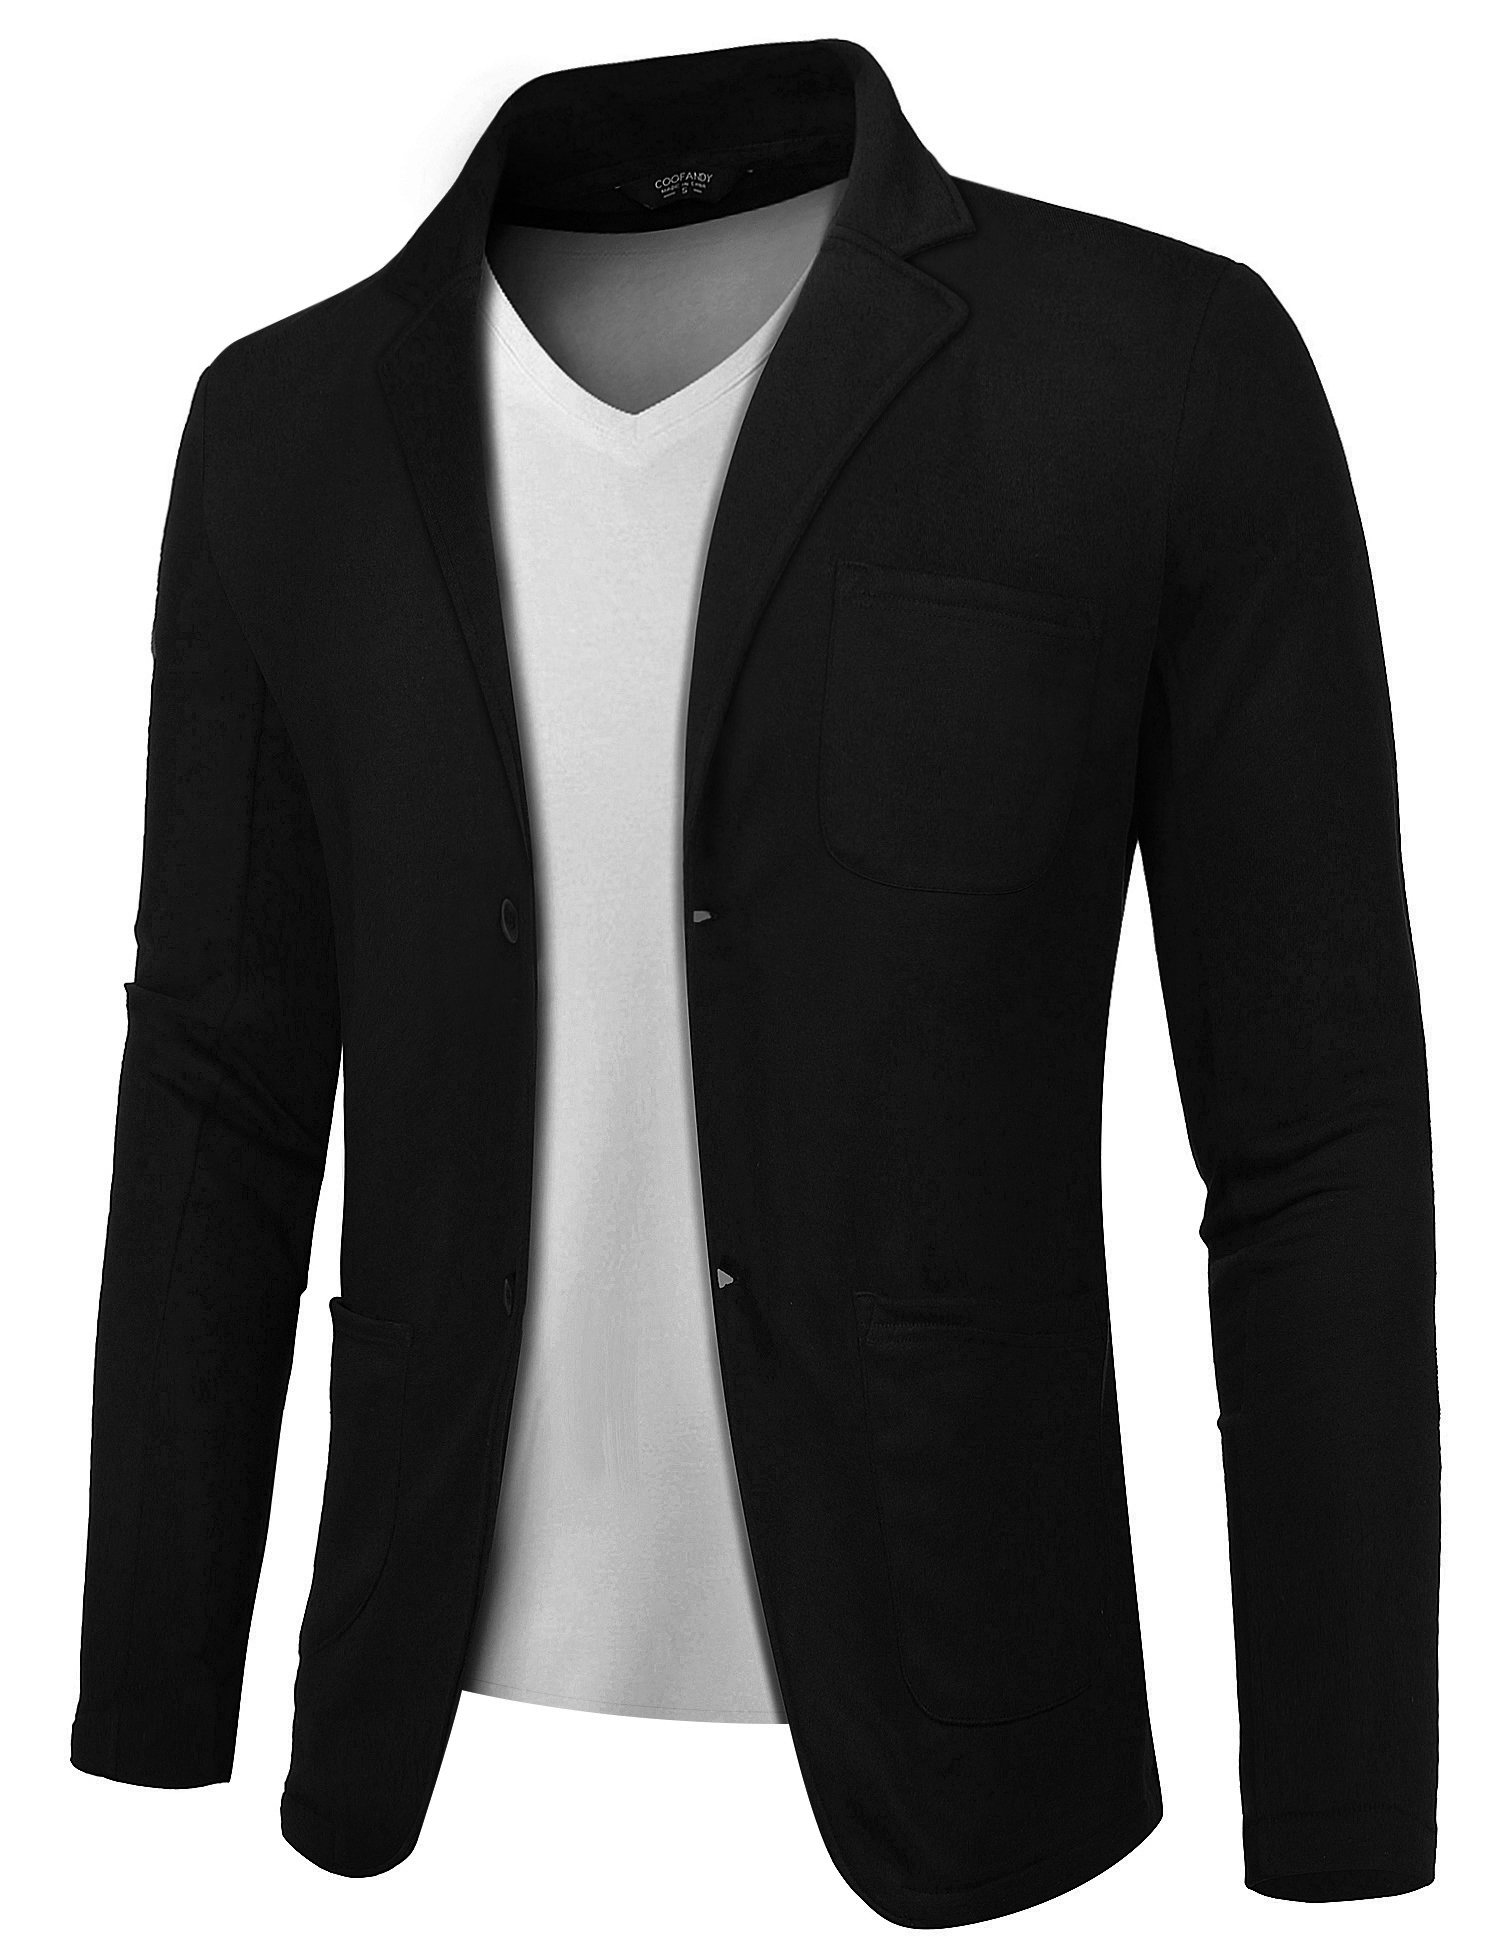 COOFANDY Mens Casual Two Button Suits Lapel Blazer Jacket Lightweight Sport Coat,Black,Medium